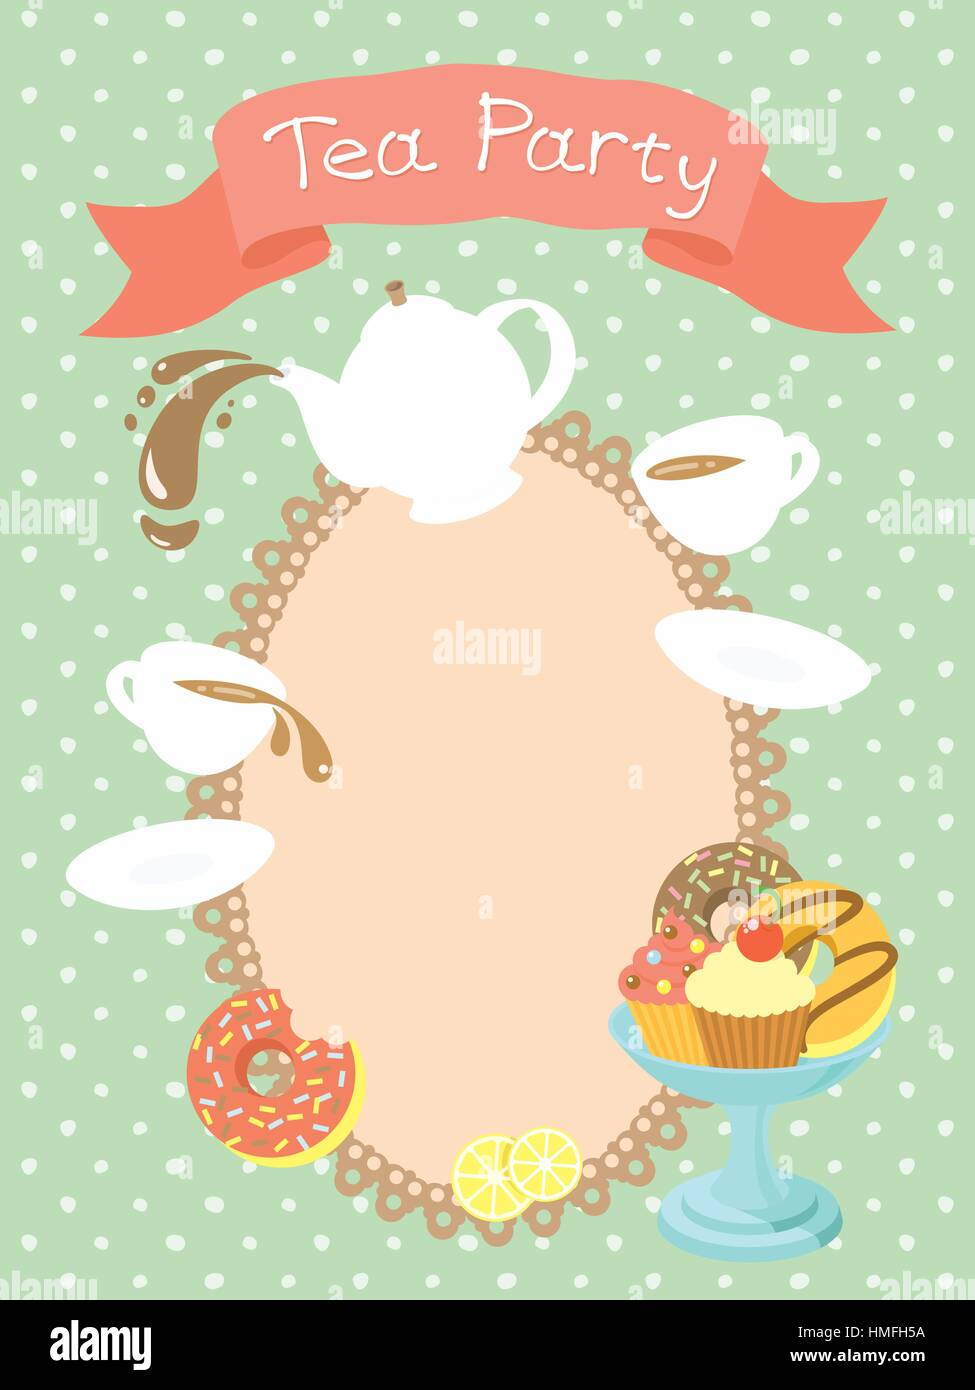 Colorful flat illustration of a tea party invitation card with a ...